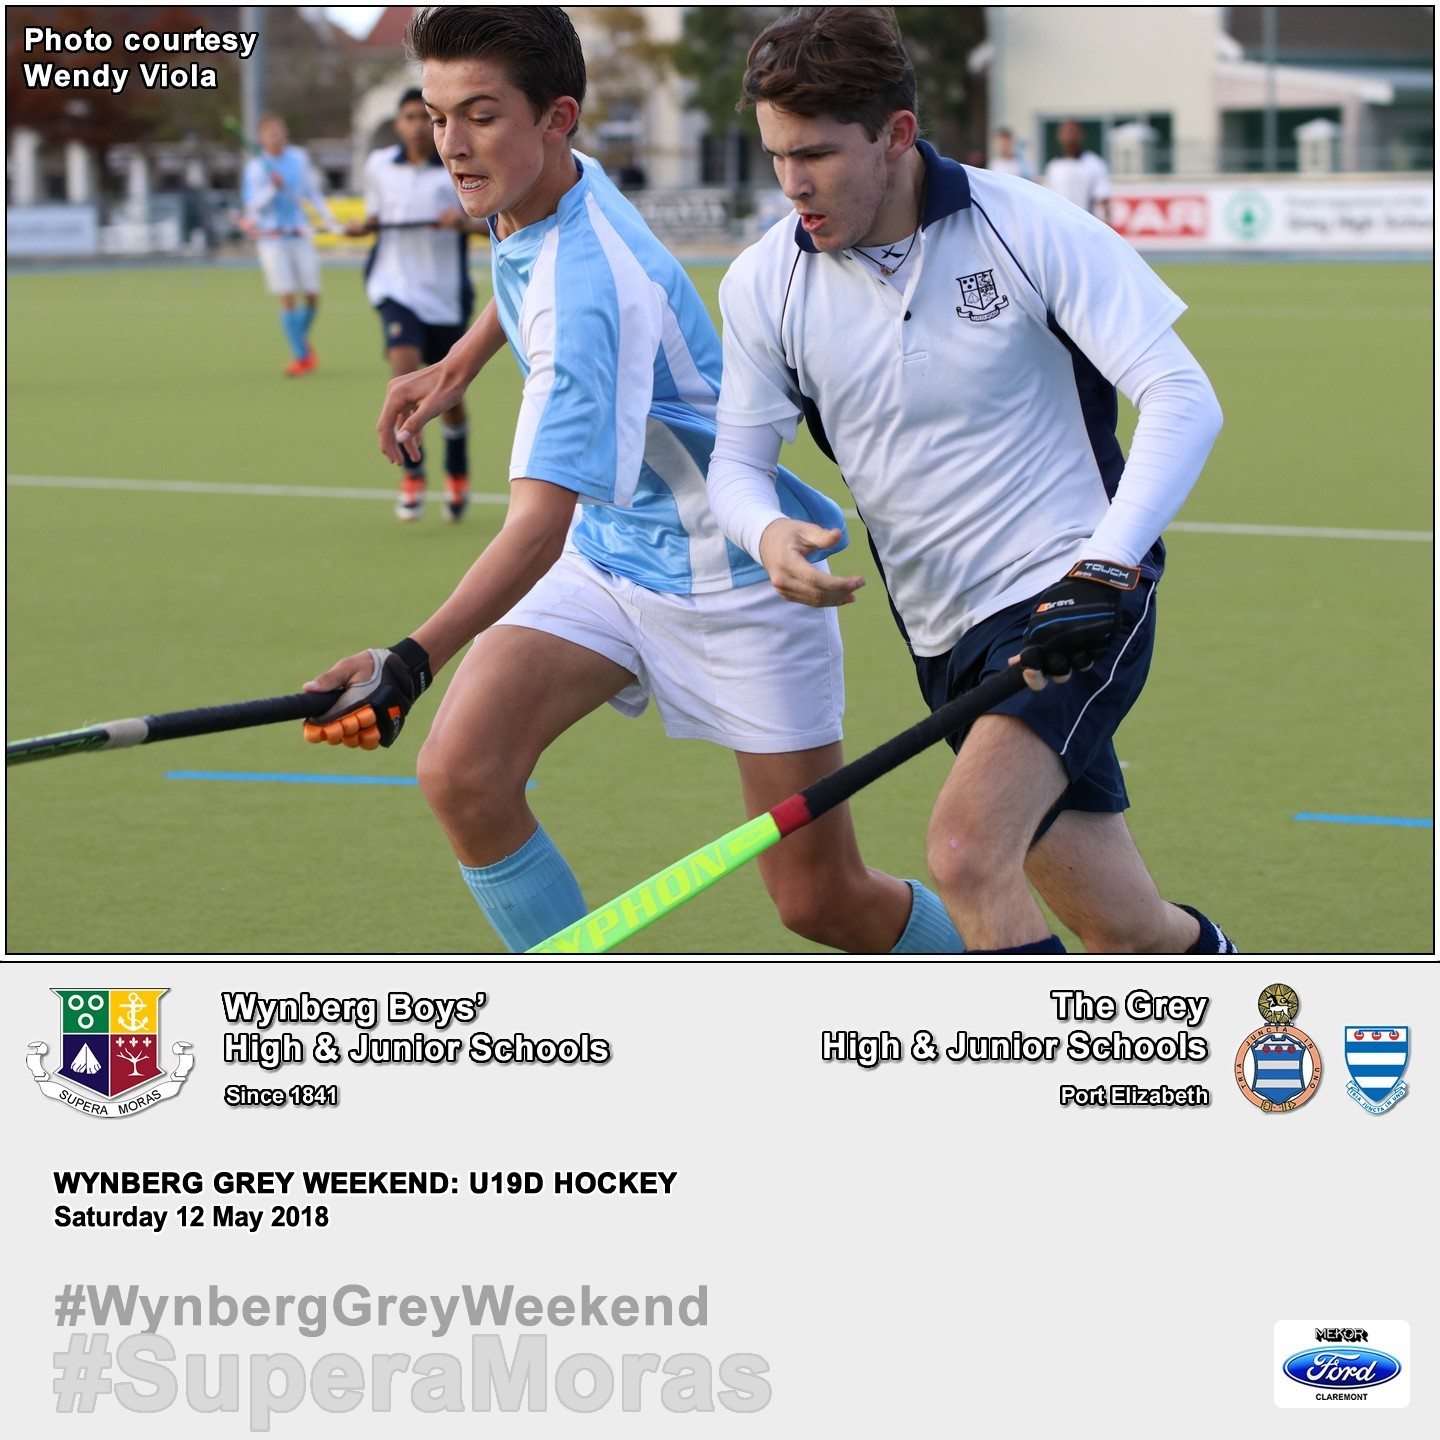 U19D vs Grey High, Saturday 12 May 2018